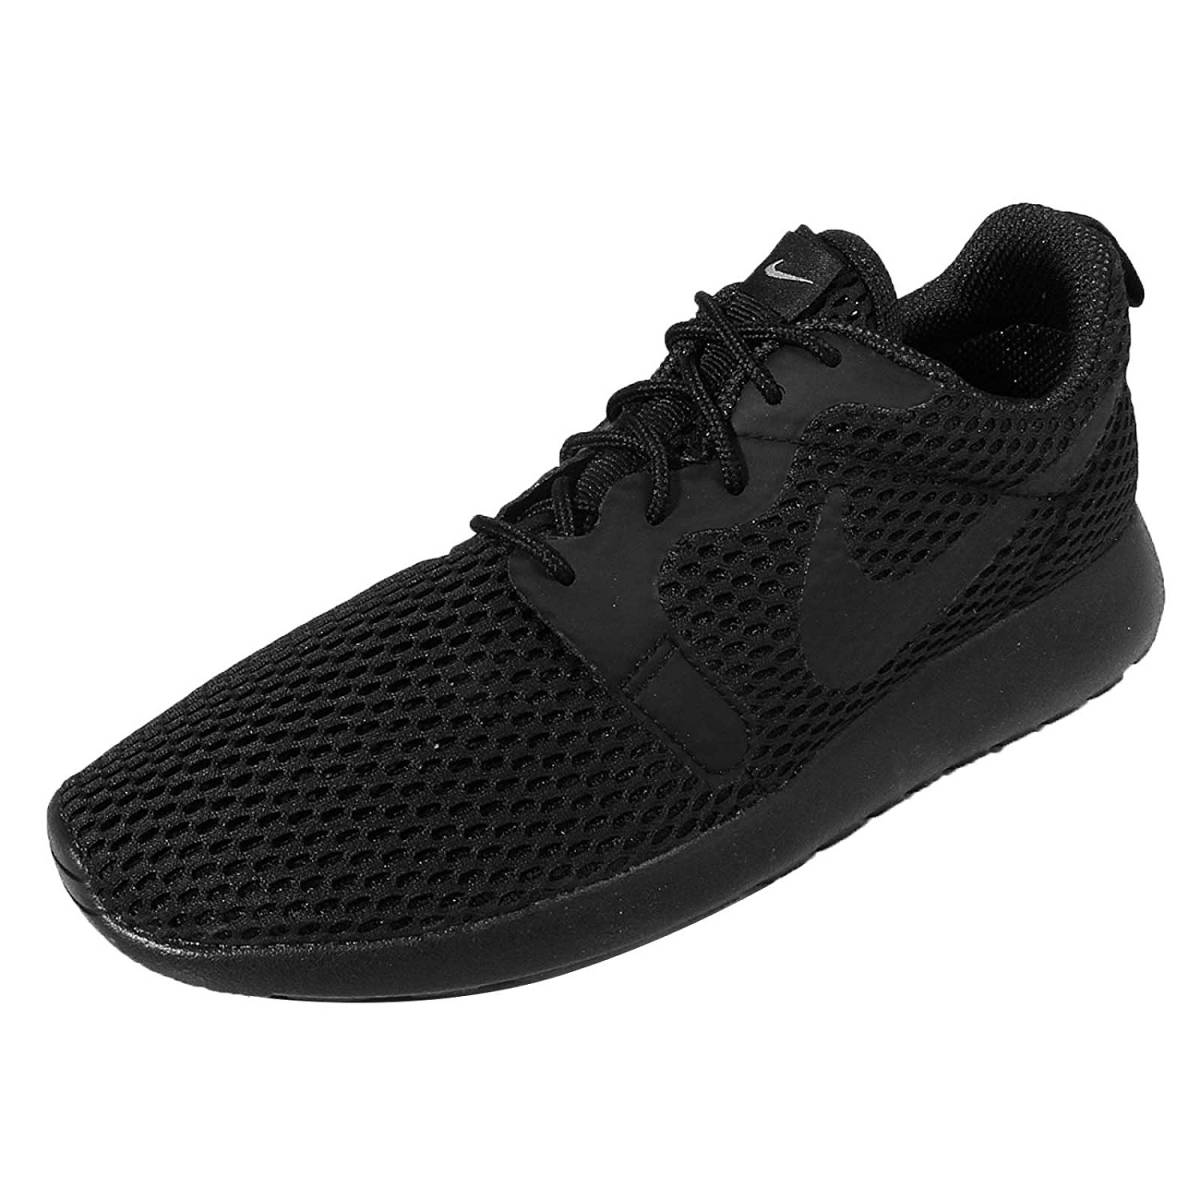 ce5f521df902 24cm  Nike wi men s low si one hyper b Lee zWMNS ROSHE ONE HYP BR ...